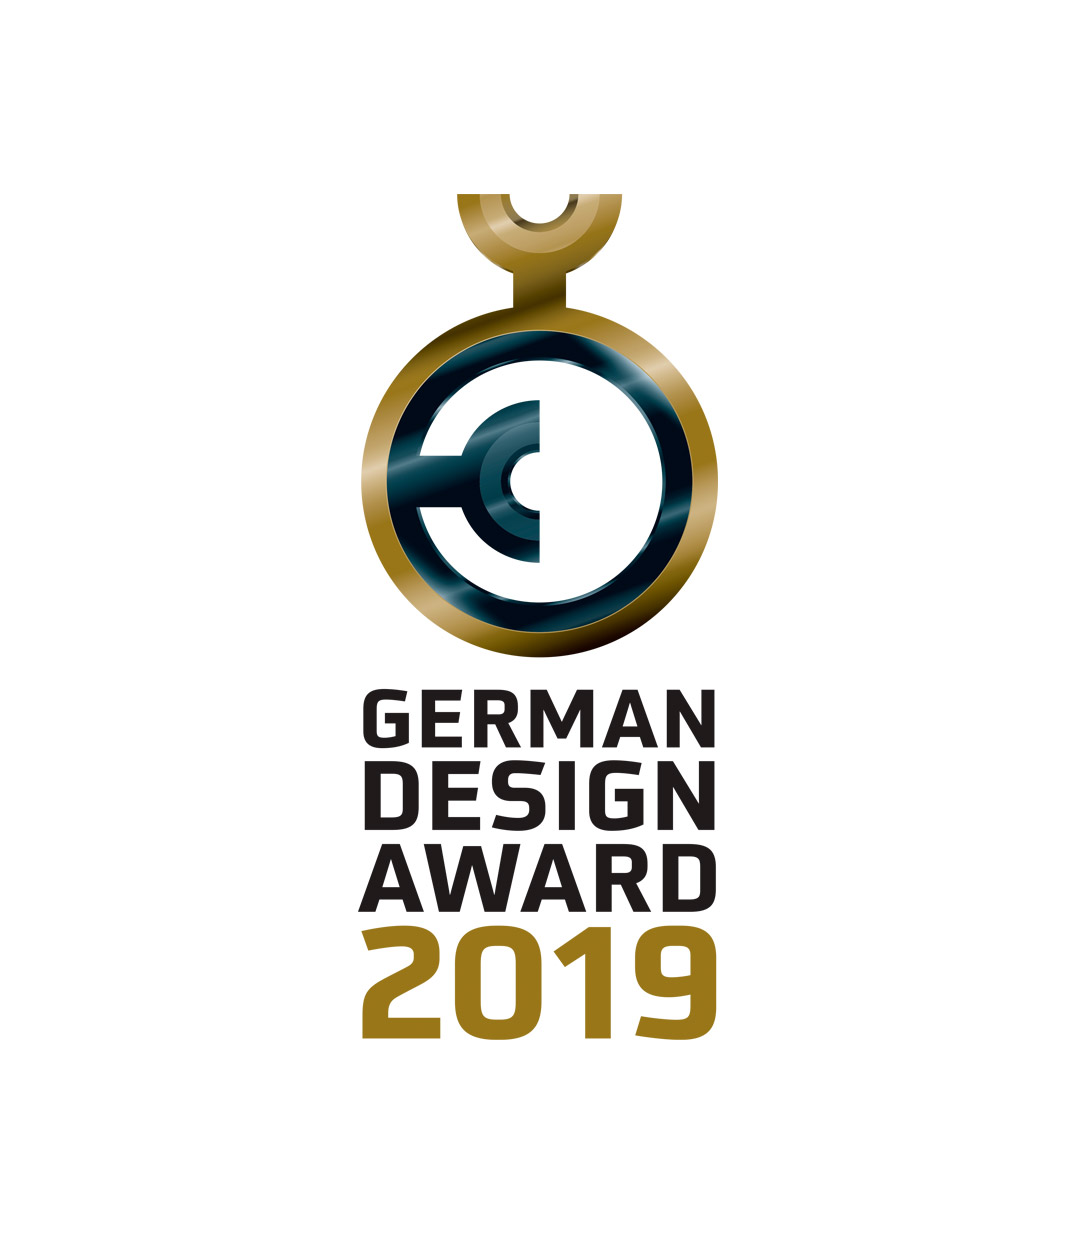 M&A CREATIVE AGENCY TRIPLAMENTE PREMIADA NO CONCURSO GERMAN DESIGN AWARD 2019